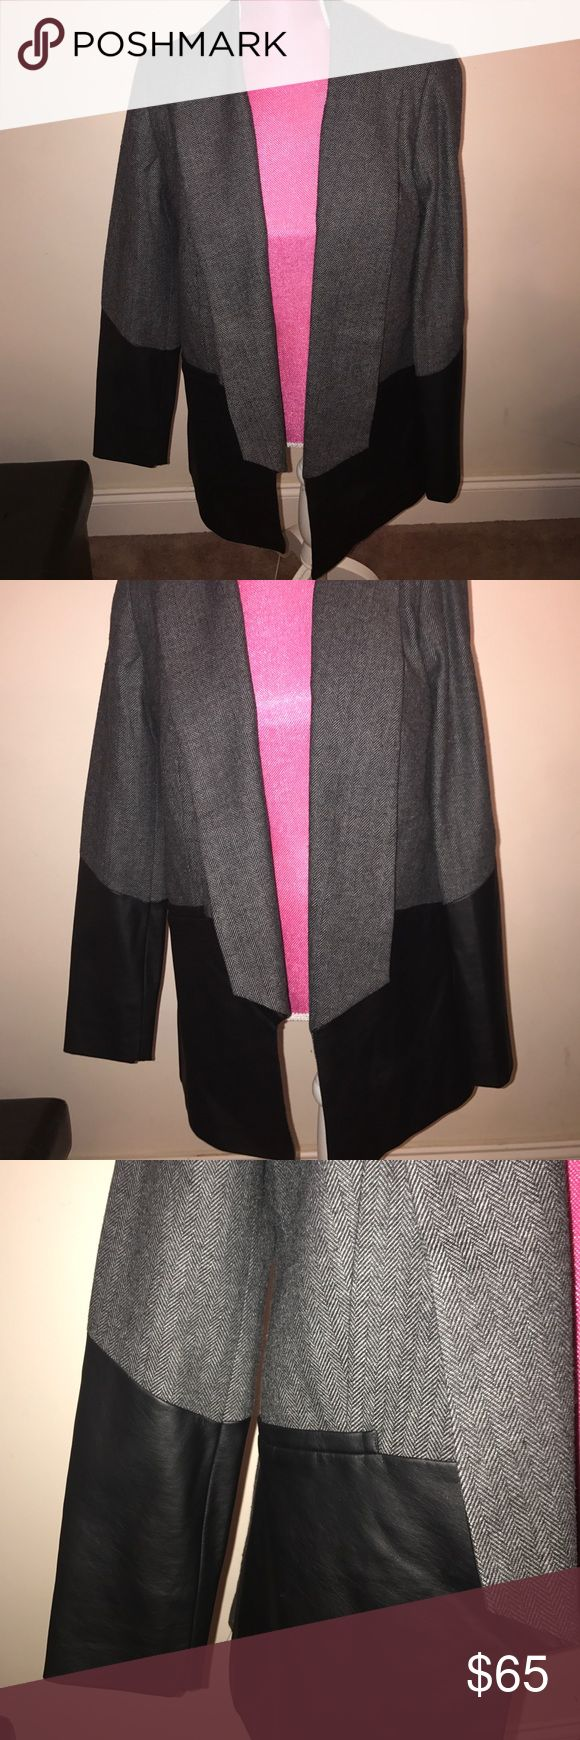 Grey Tweed blazer with black faux leather detail This blazer is so hot. It's so rich looking and the tweed mixed with the leather is so nice looking. george kotsiopoulos Jackets & Coats Blazers